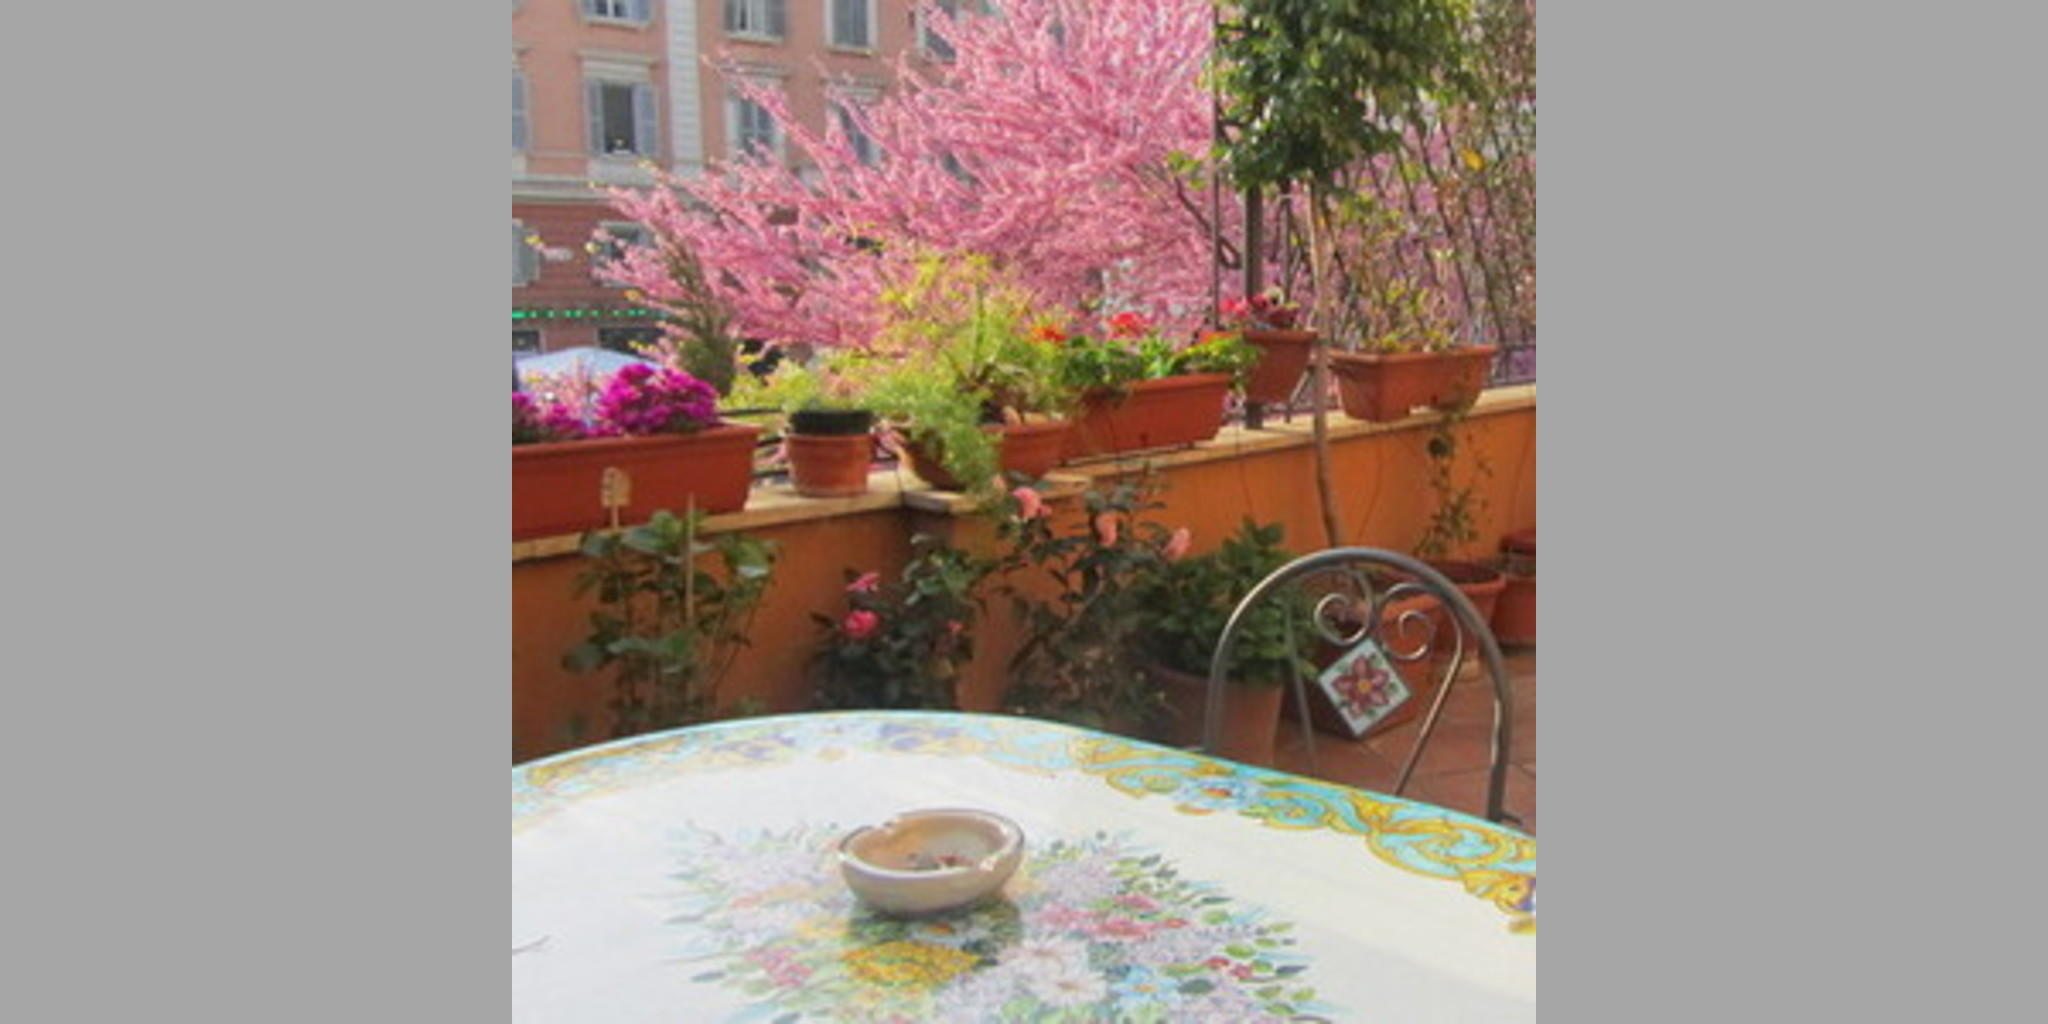 Bed & Breakfast Roma - Zona Prati_Cola Di Rienzo